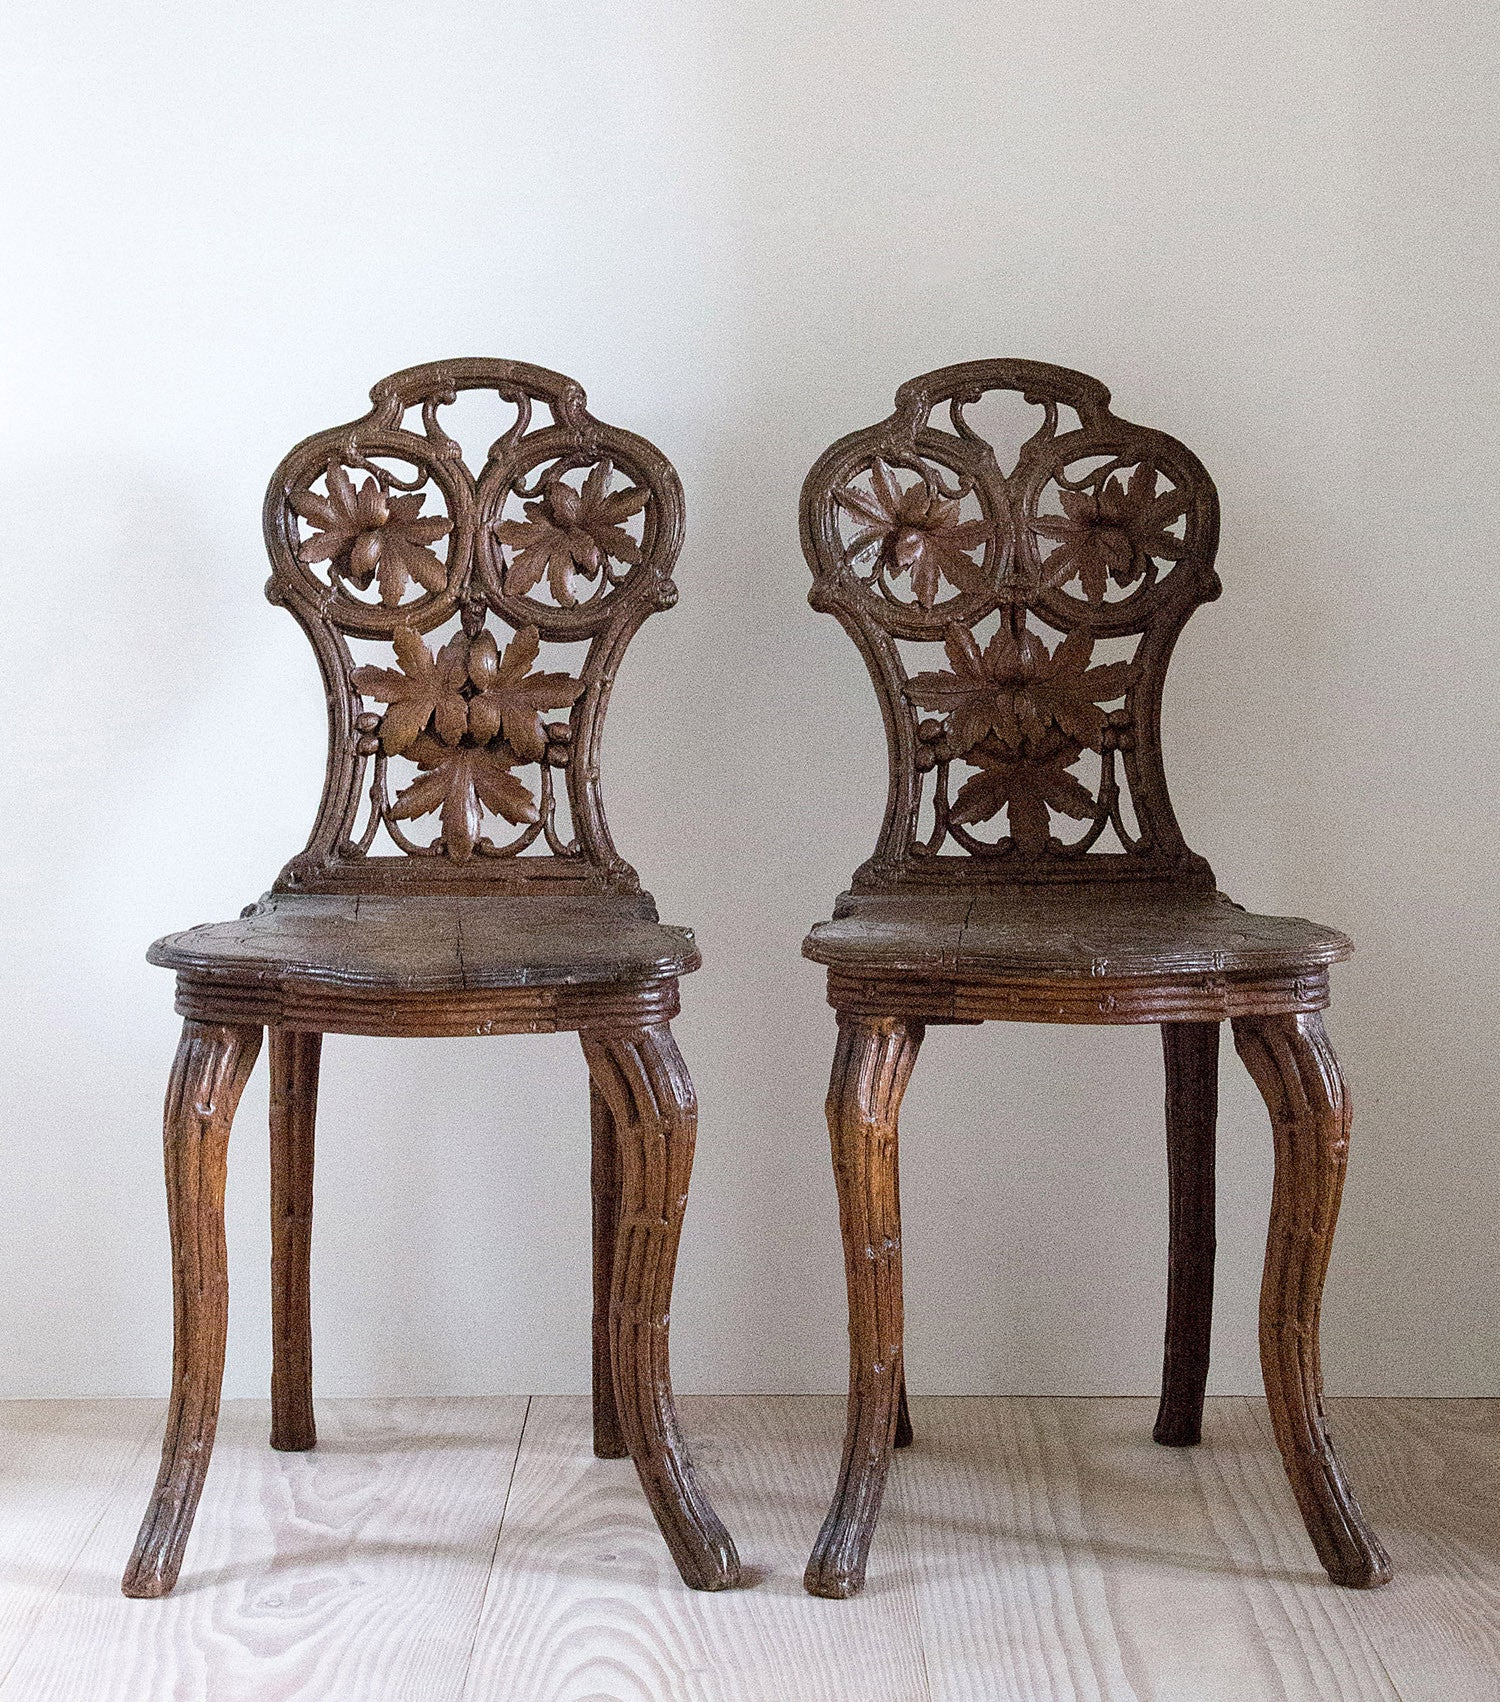 Swiss 19th Century 'Black Forest' Chairs - One Pair Remaining